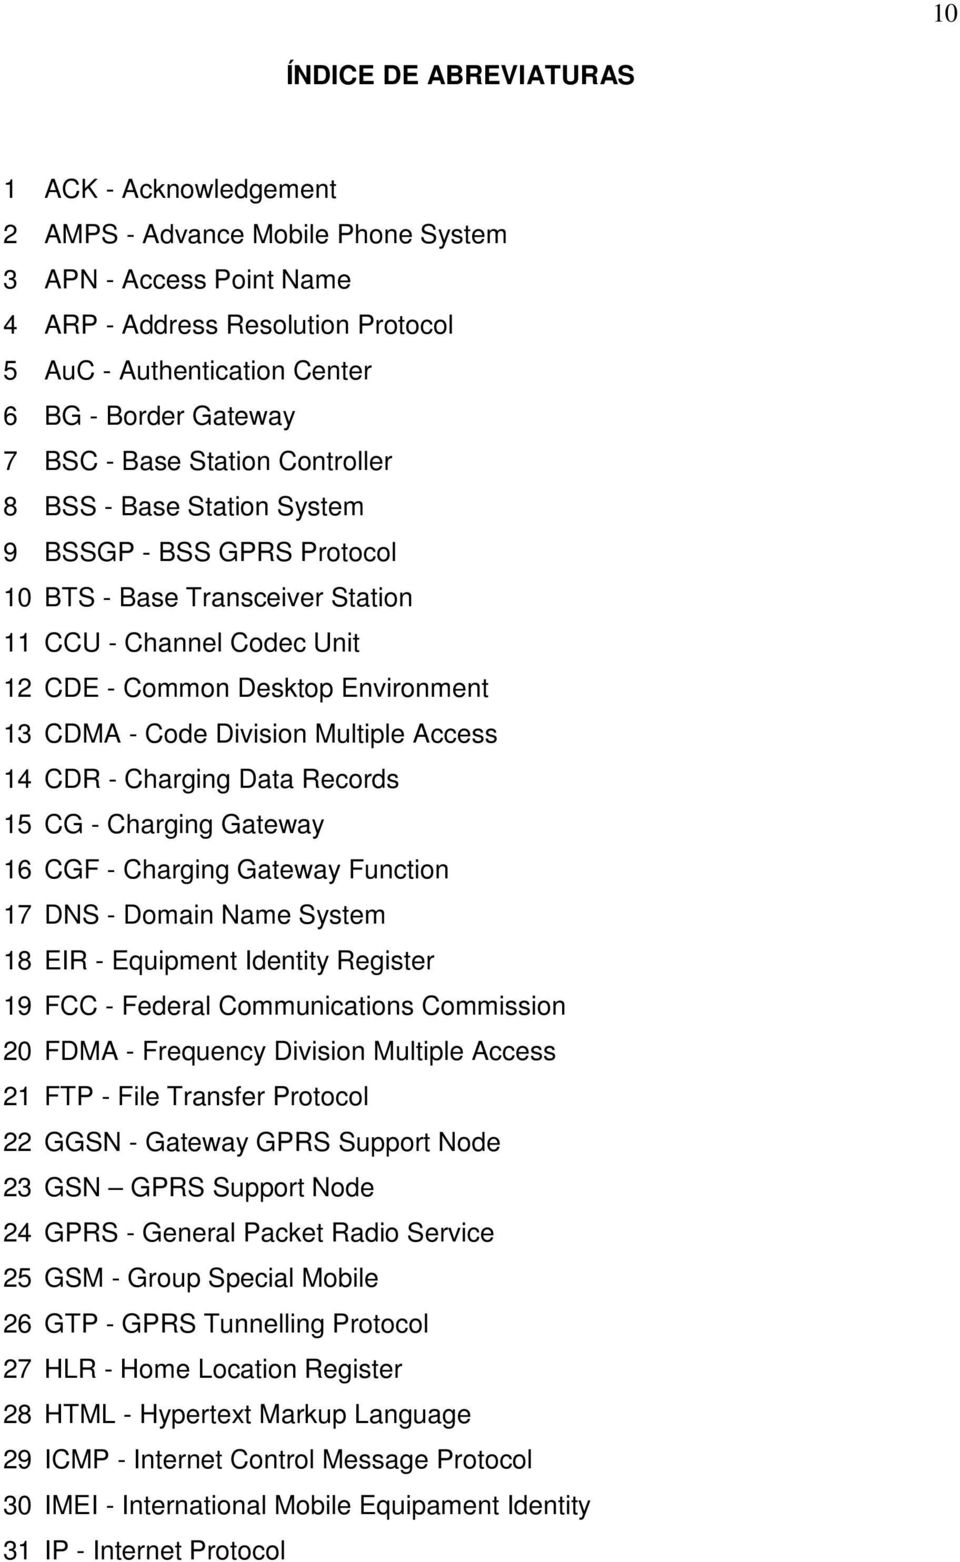 CDMA - Code Division Multiple Access 14 CDR - Charging Data Records 15 CG - Charging Gateway 16 CGF - Charging Gateway Function 17 DNS - Domain Name System 18 EIR - Equipment Identity Register 19 FCC